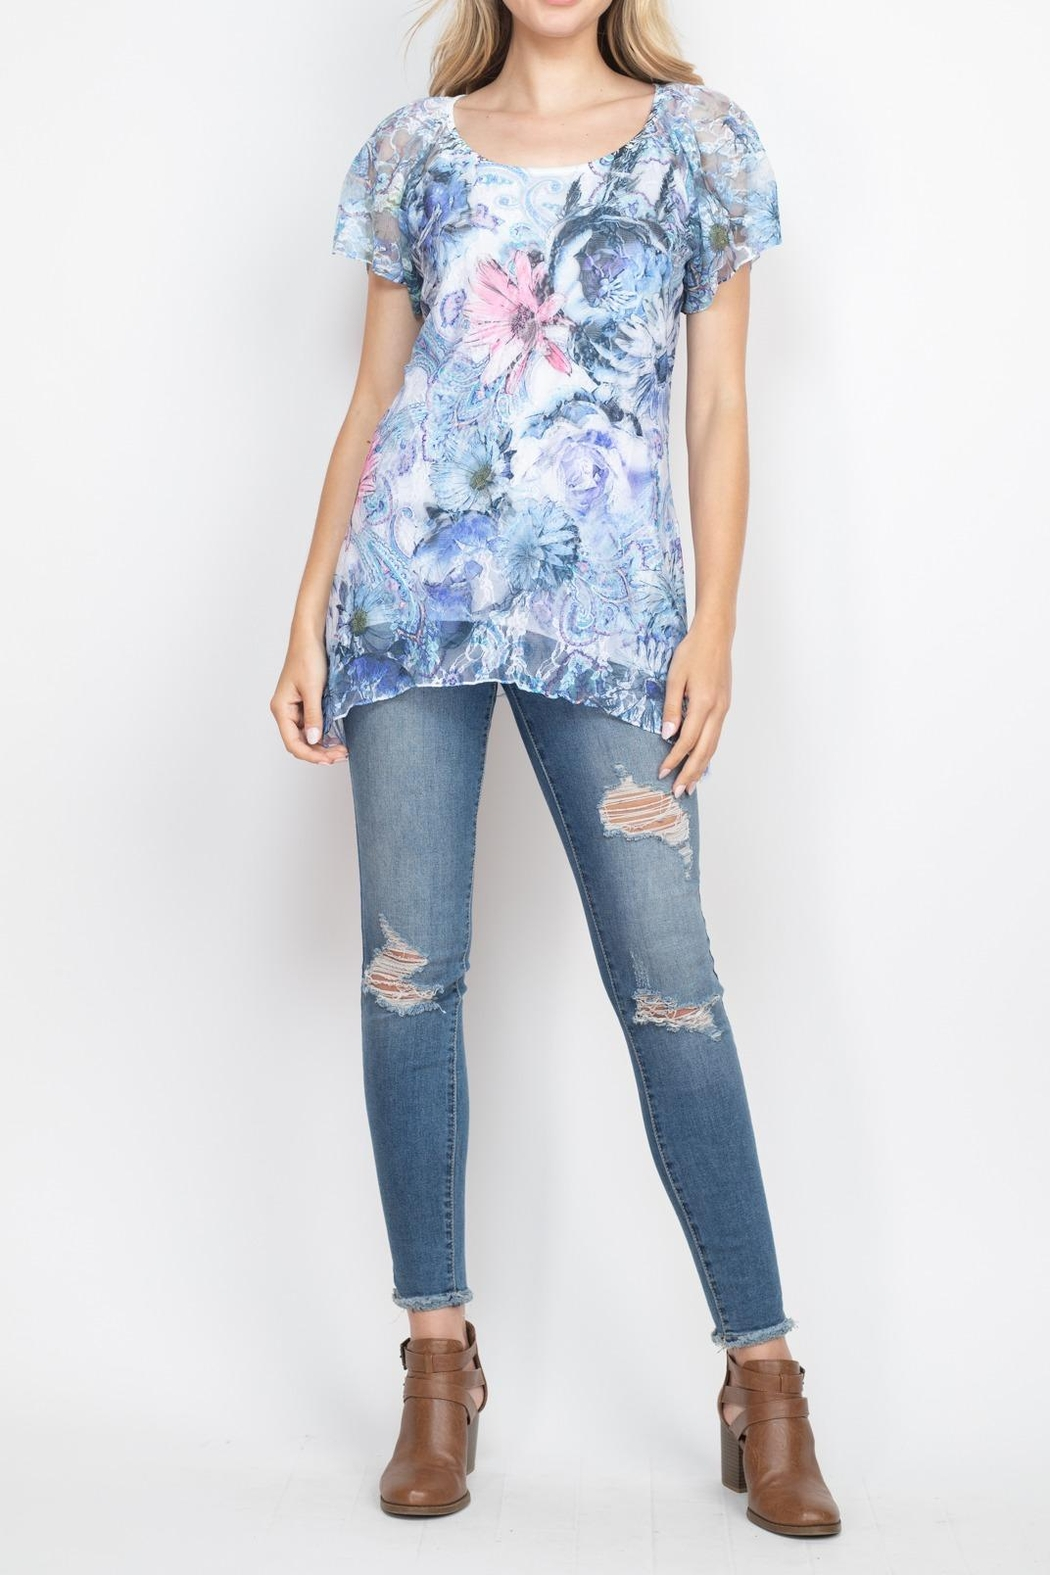 Riah Fashion Blue Floral Top - Side Cropped Image